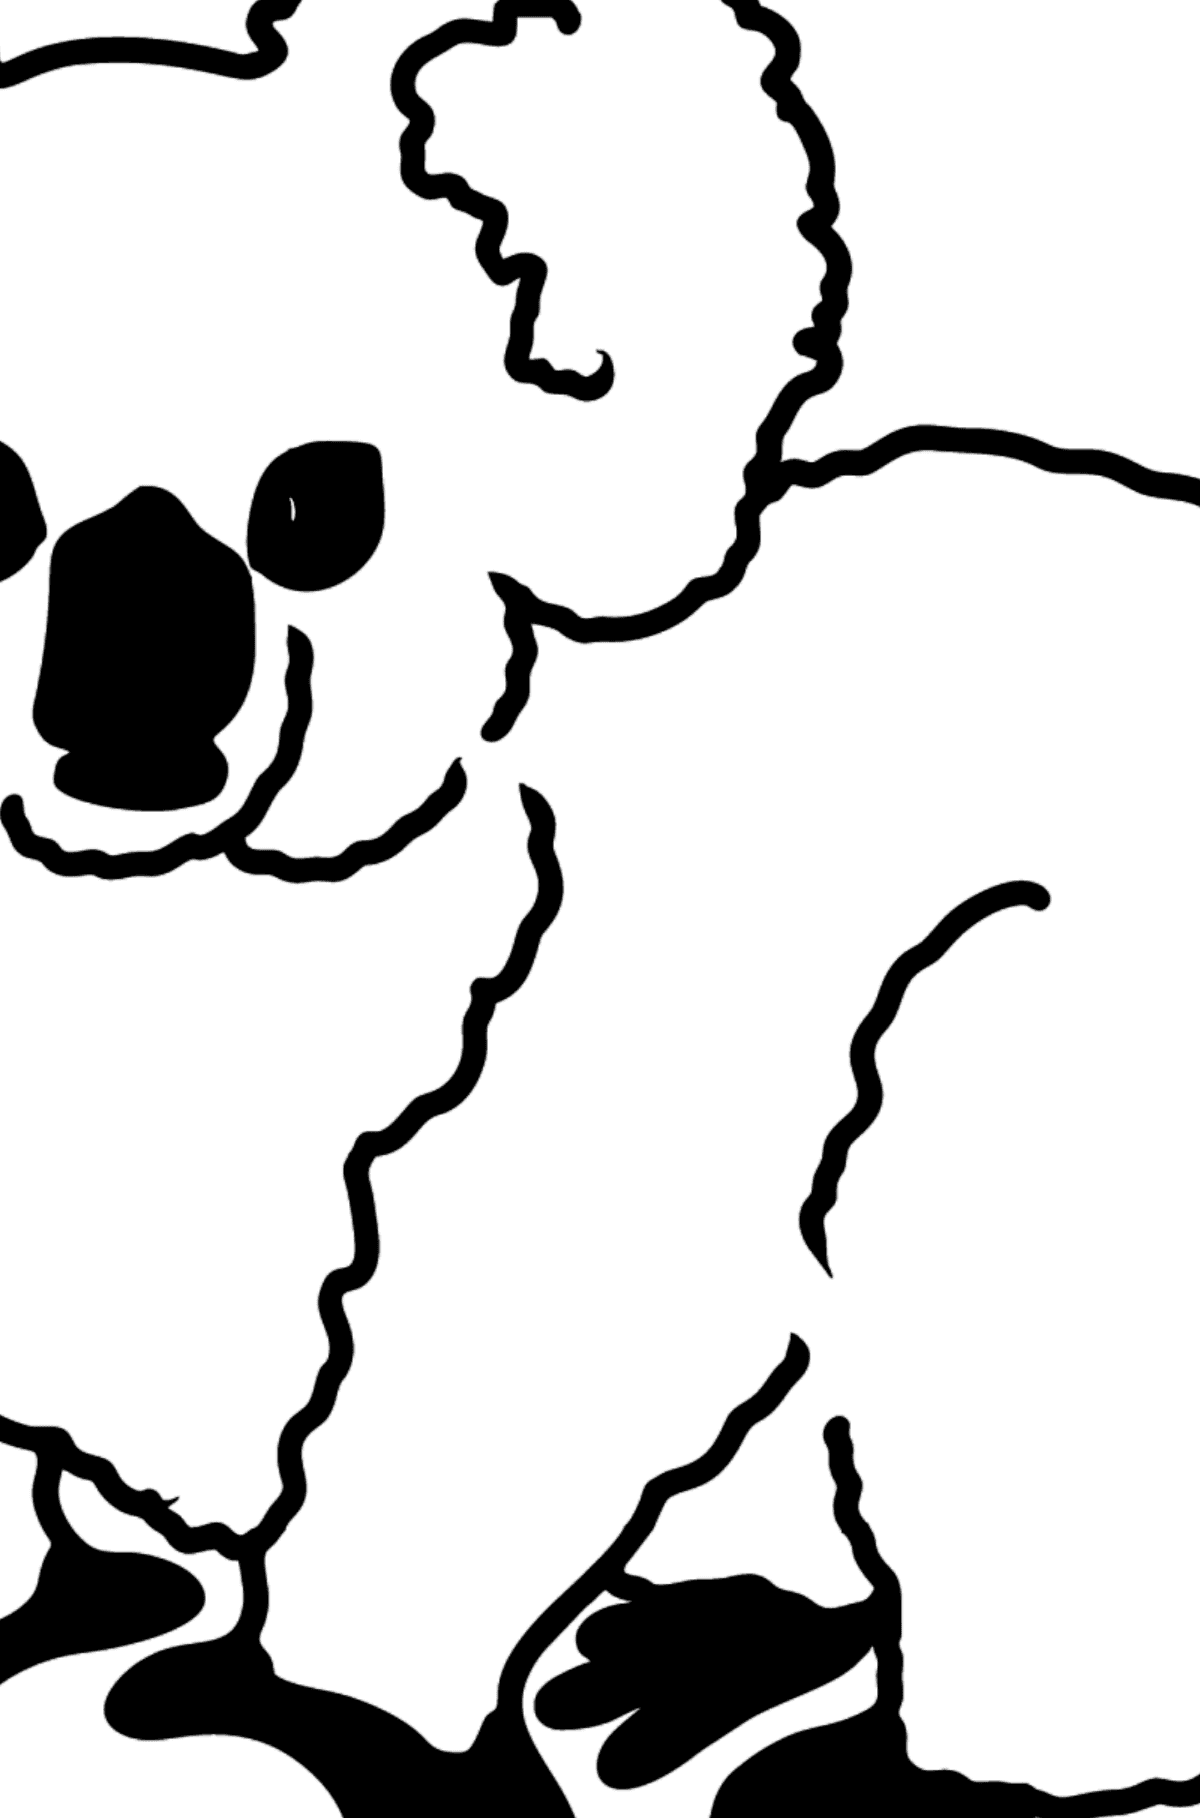 Koala coloring page - Coloring by Symbols and Geometric Shapes for Kids